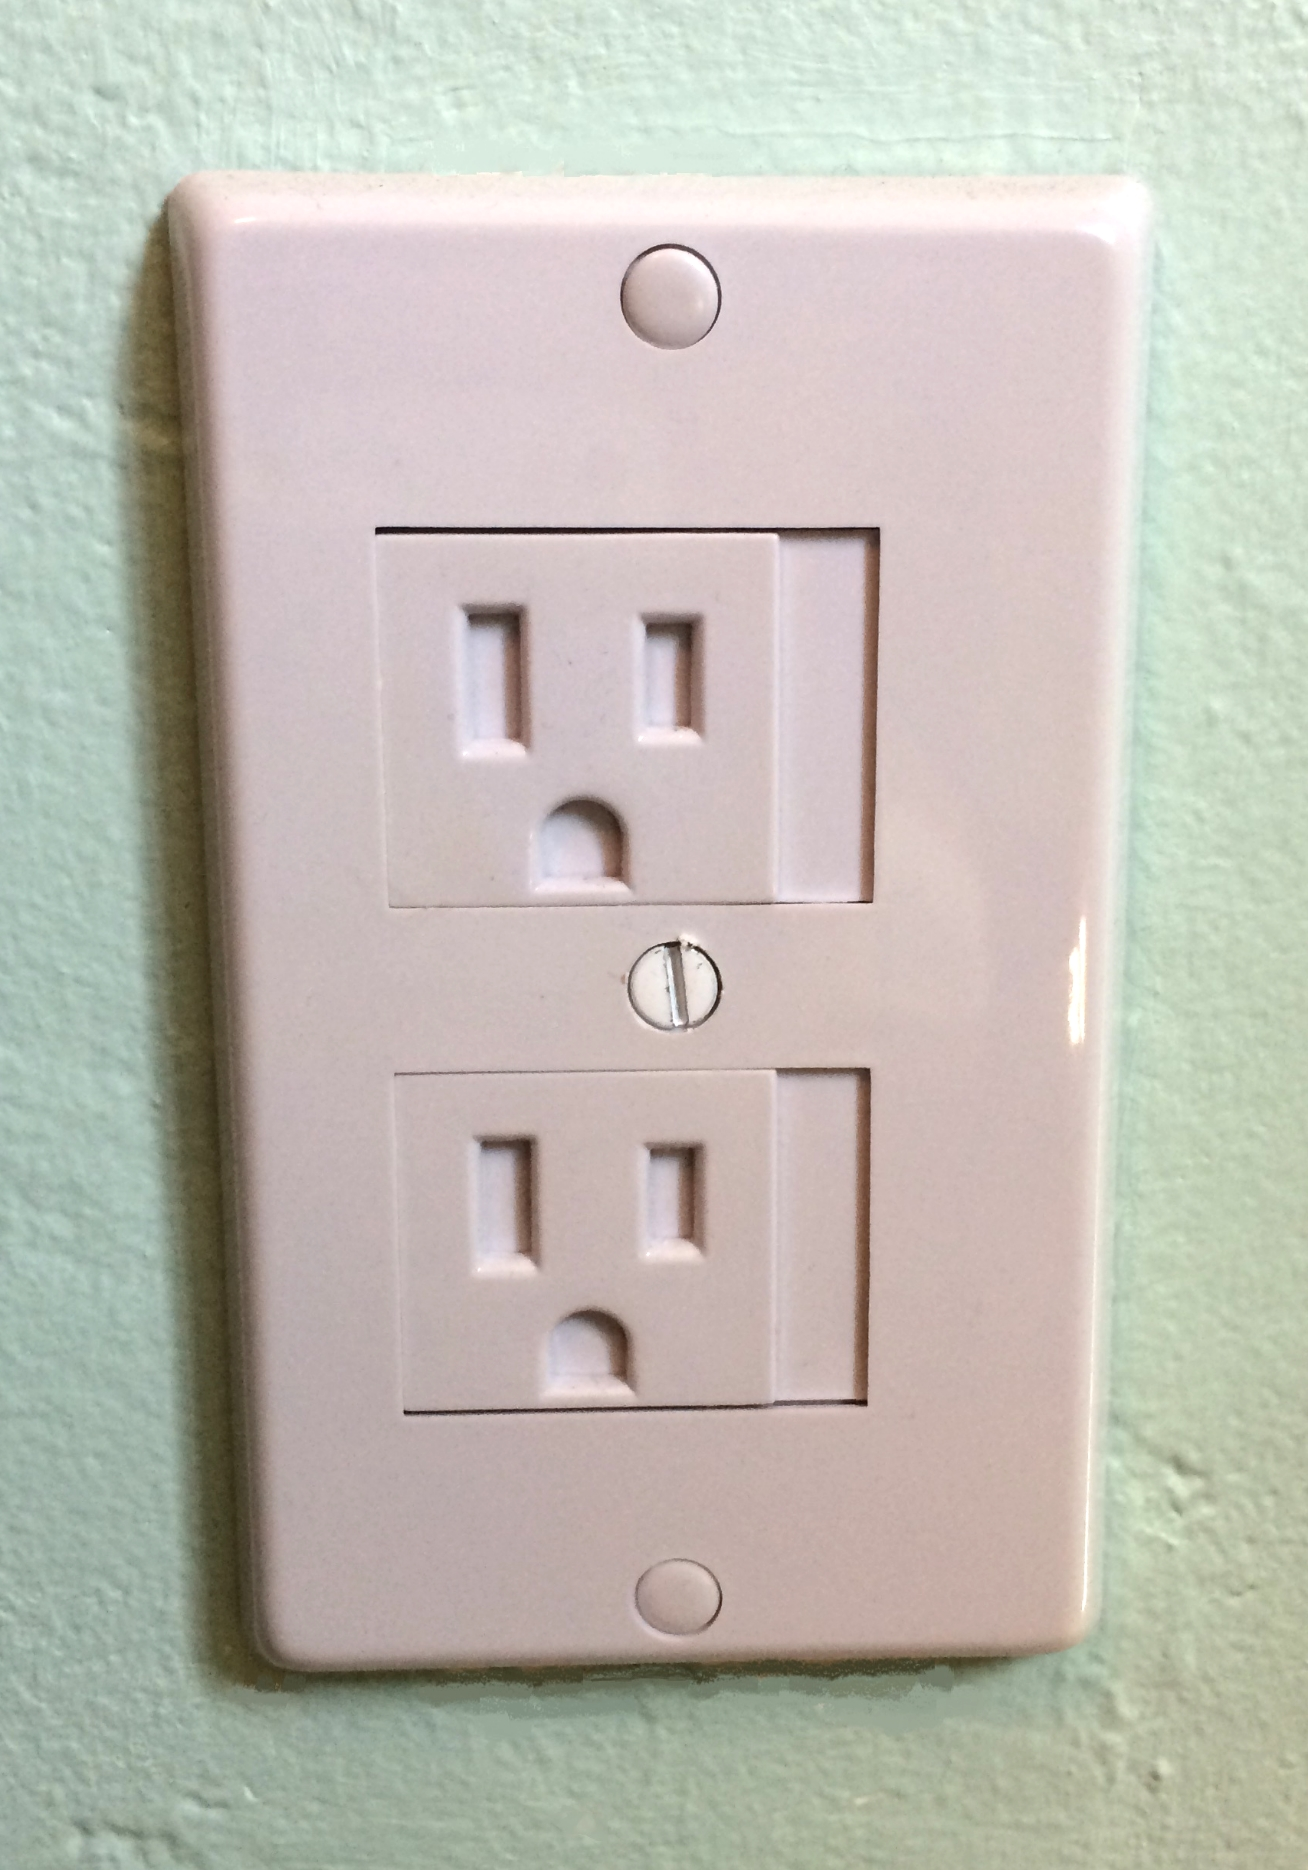 Electrical outlet plate cover with one screw installation.